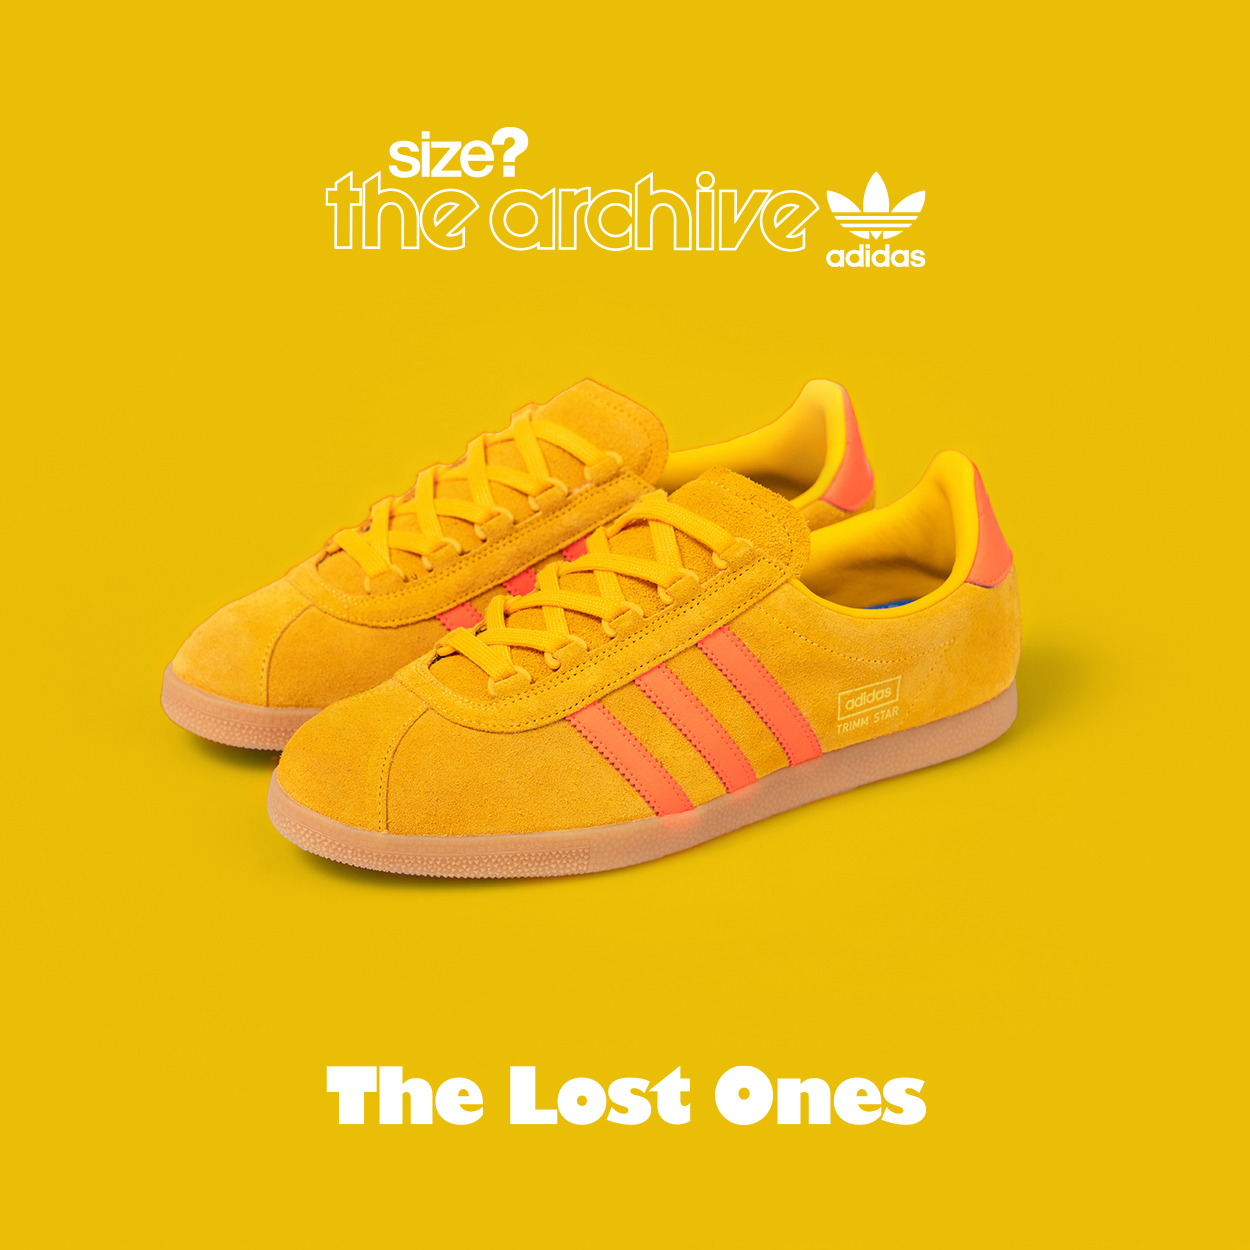 The mysterious 'Unknown' joins our adidas Originals 'The Lost Ones' Trimm Star series